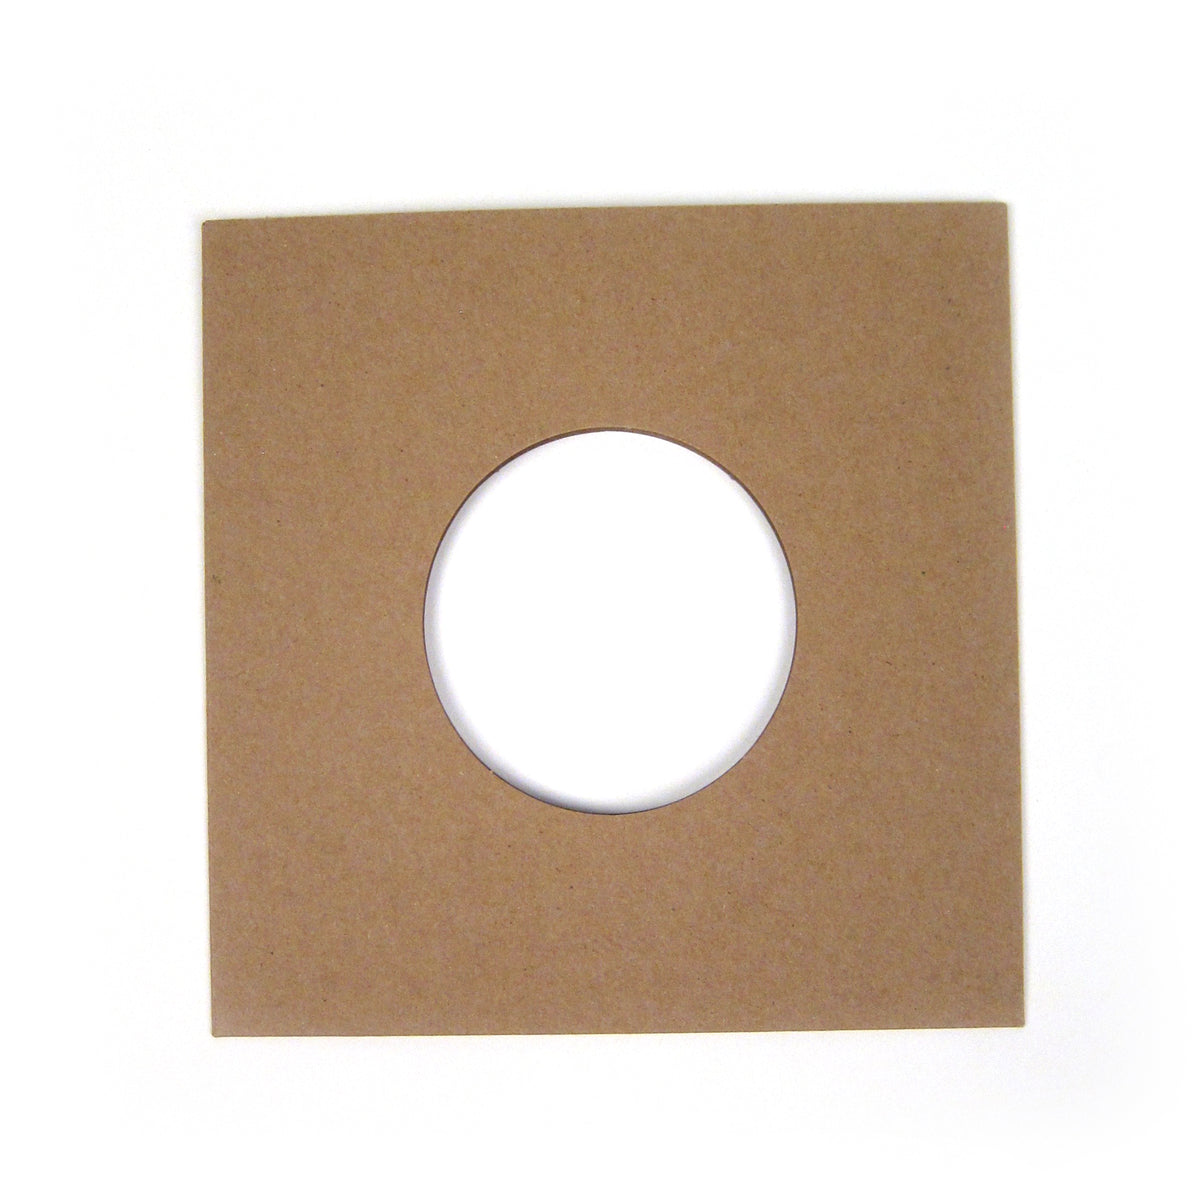 "Record Supply Co: 7"" Outer Jacket - Kraft Brown (10 Units)"